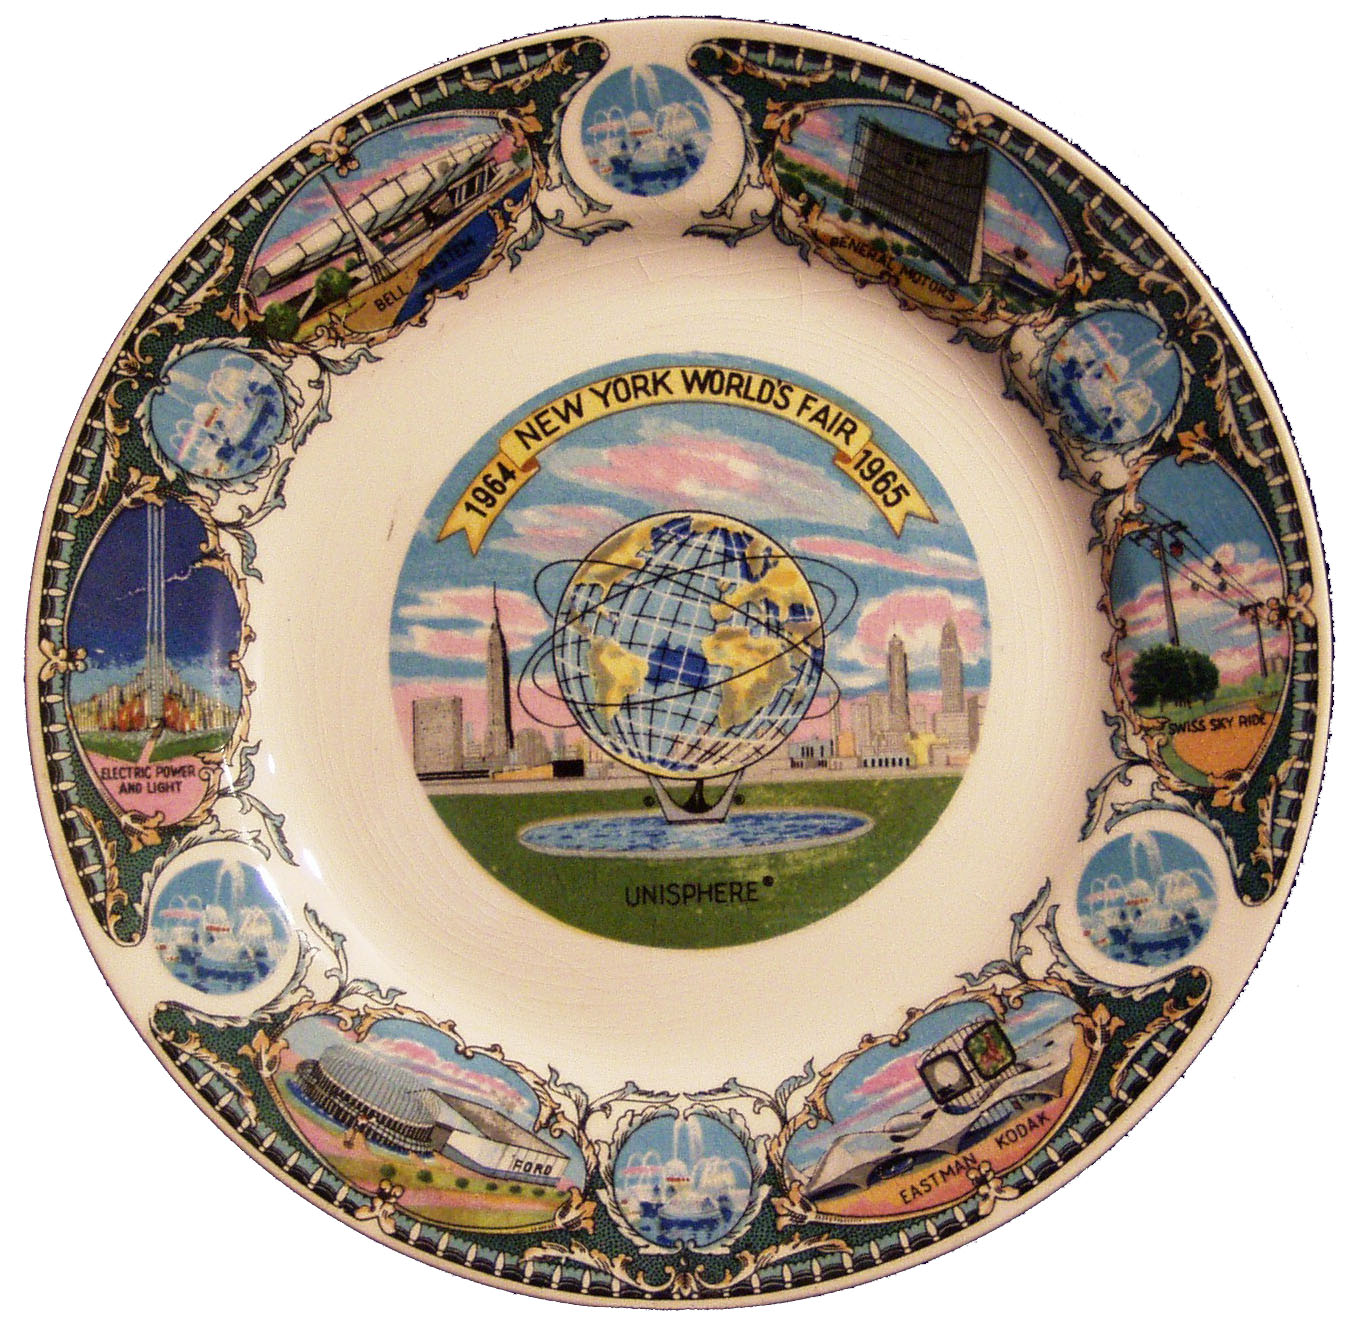 1964 New York World's Fair collectible souvenir plate